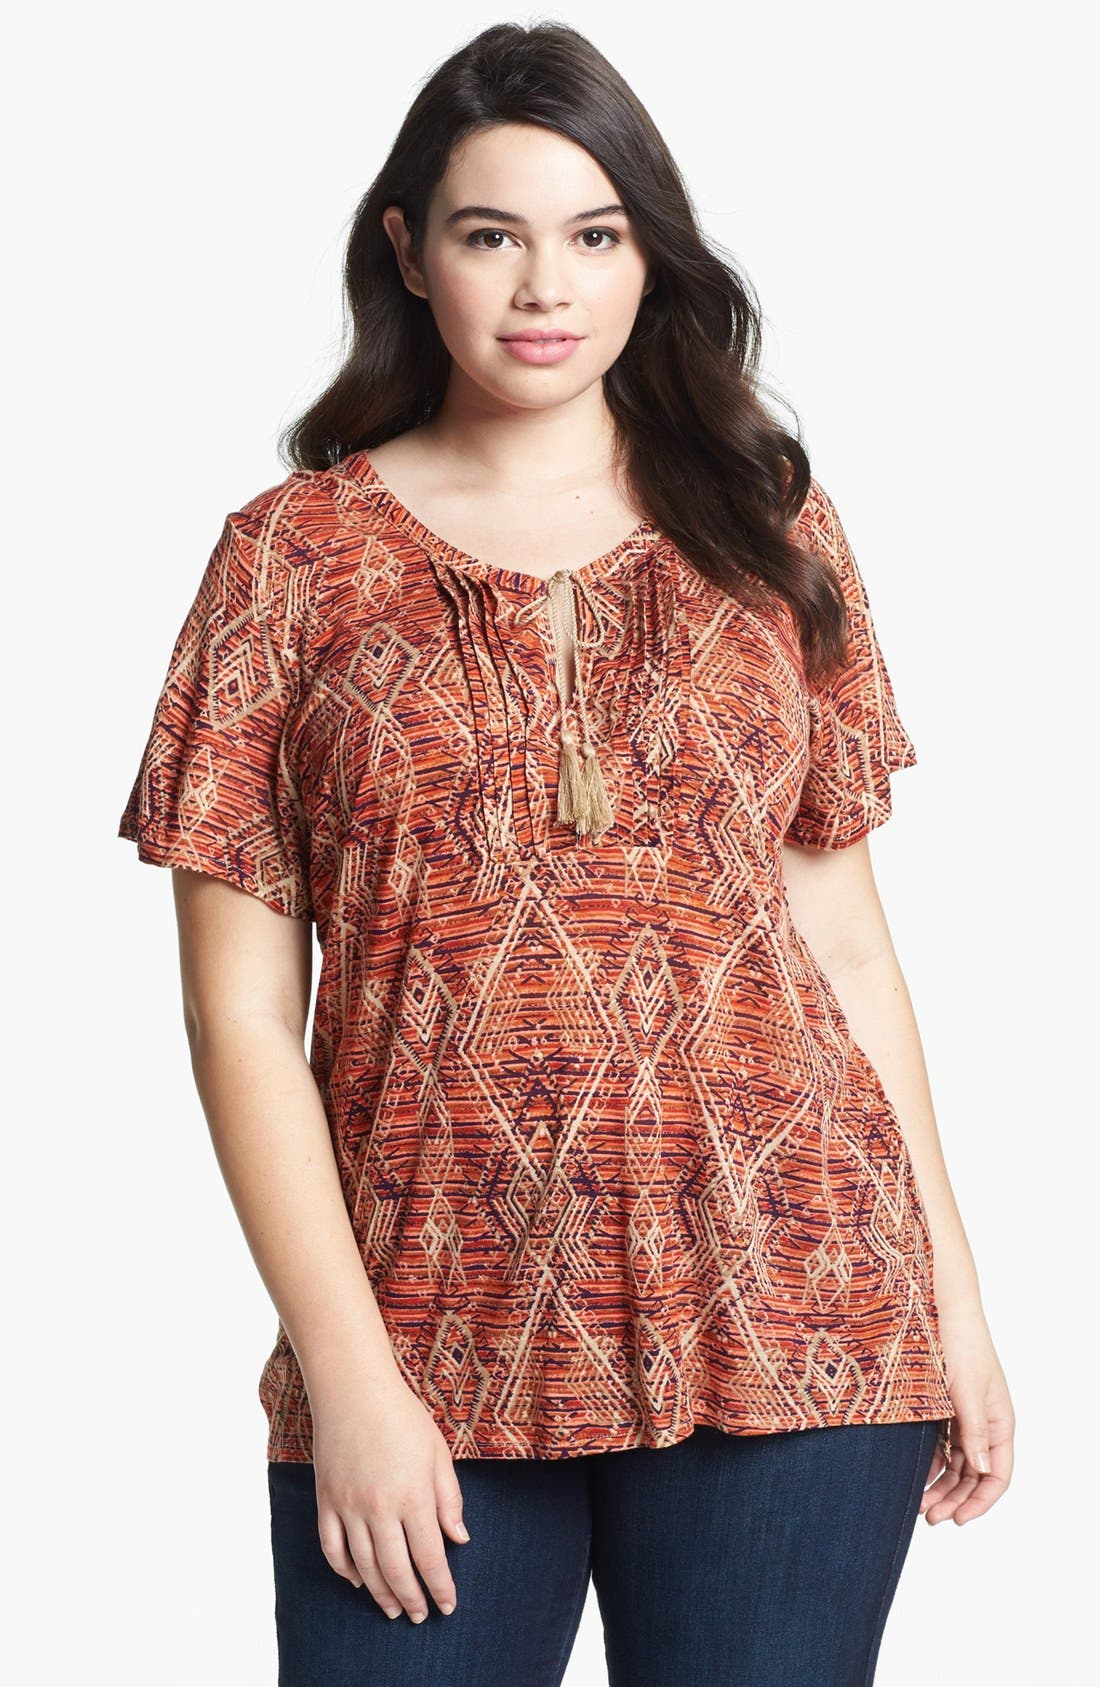 Alternate Image 1 Selected - Lucky Brand 'Aztec' Print Top (Plus)